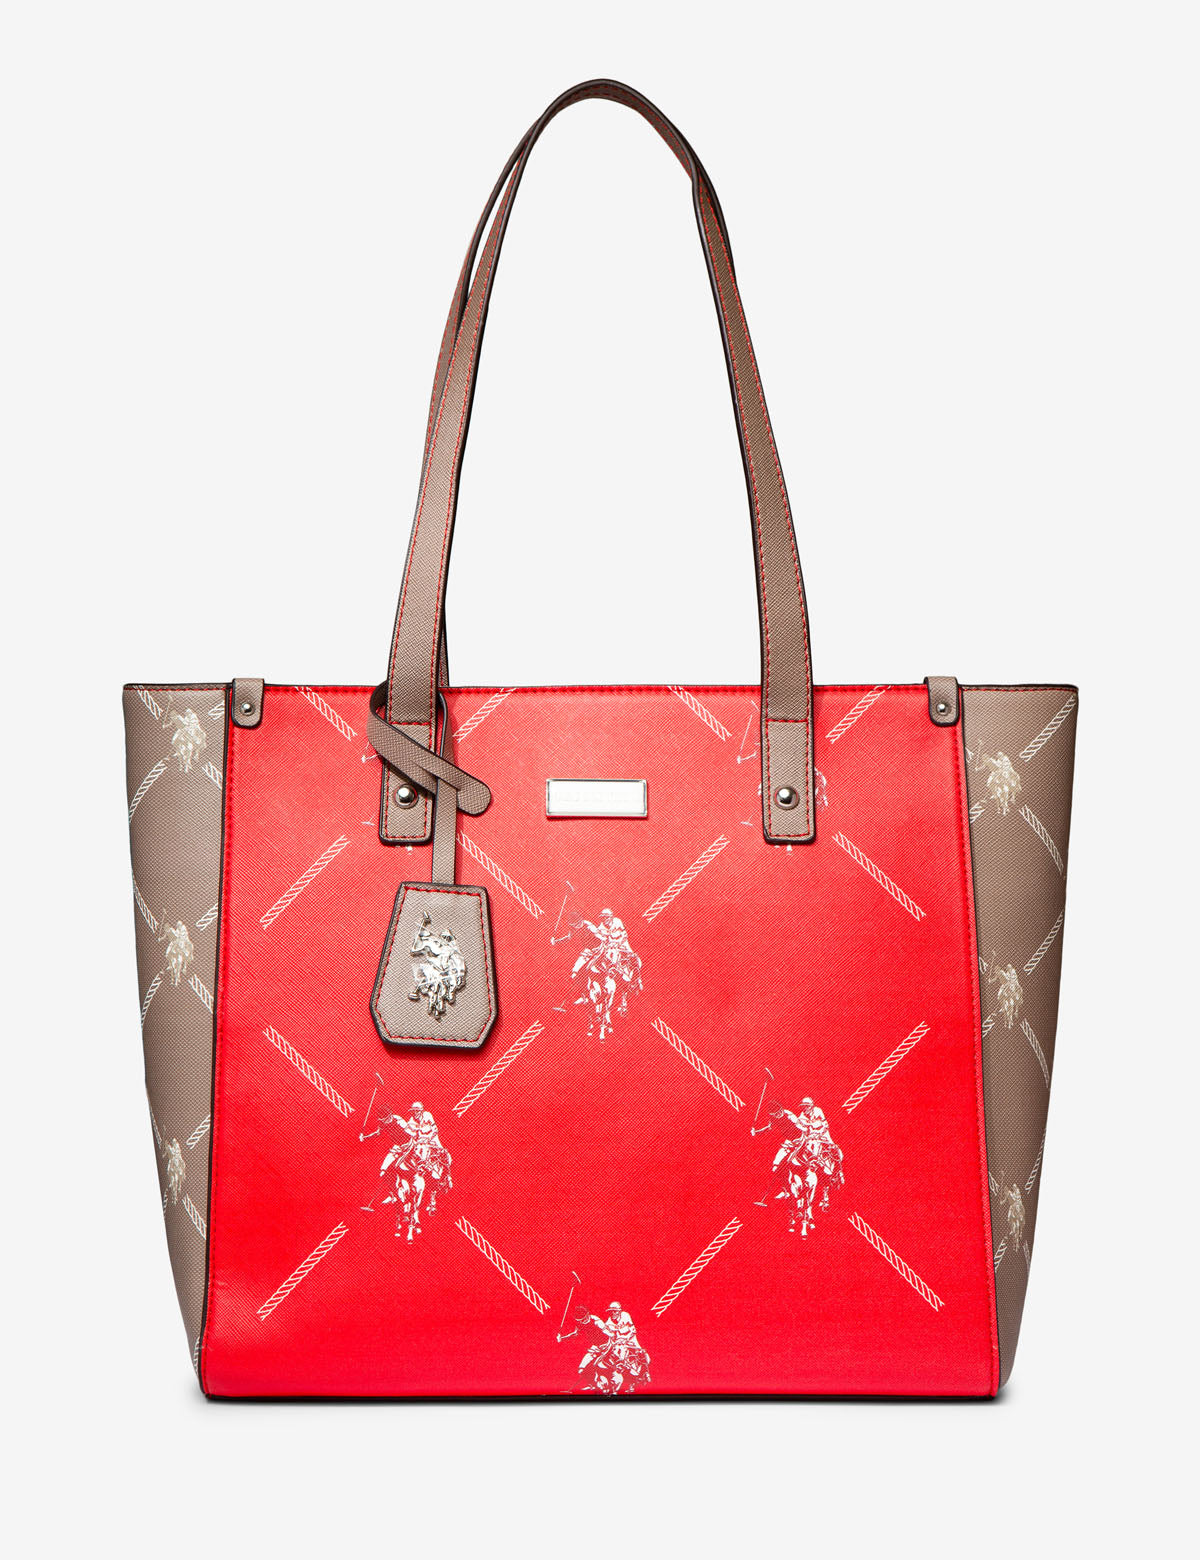 COLORBLOCK SIGNATURE HANDBAG - U.S. Polo Assn.